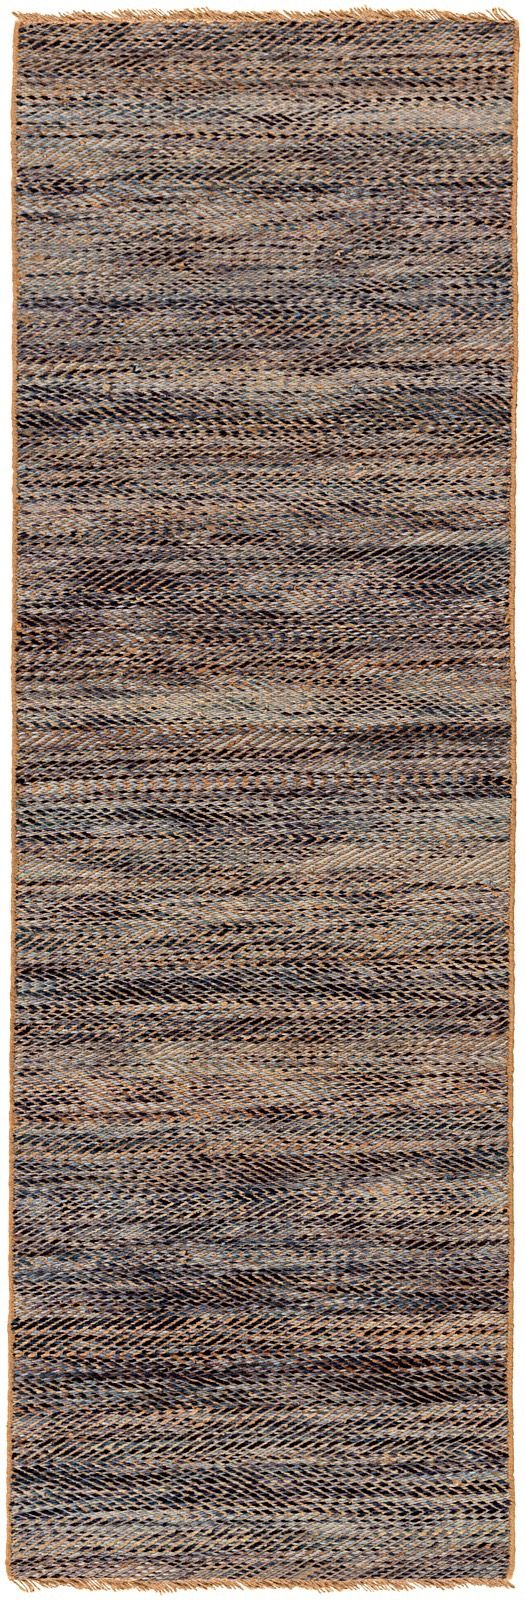 surya cove natural fiber area rug collection